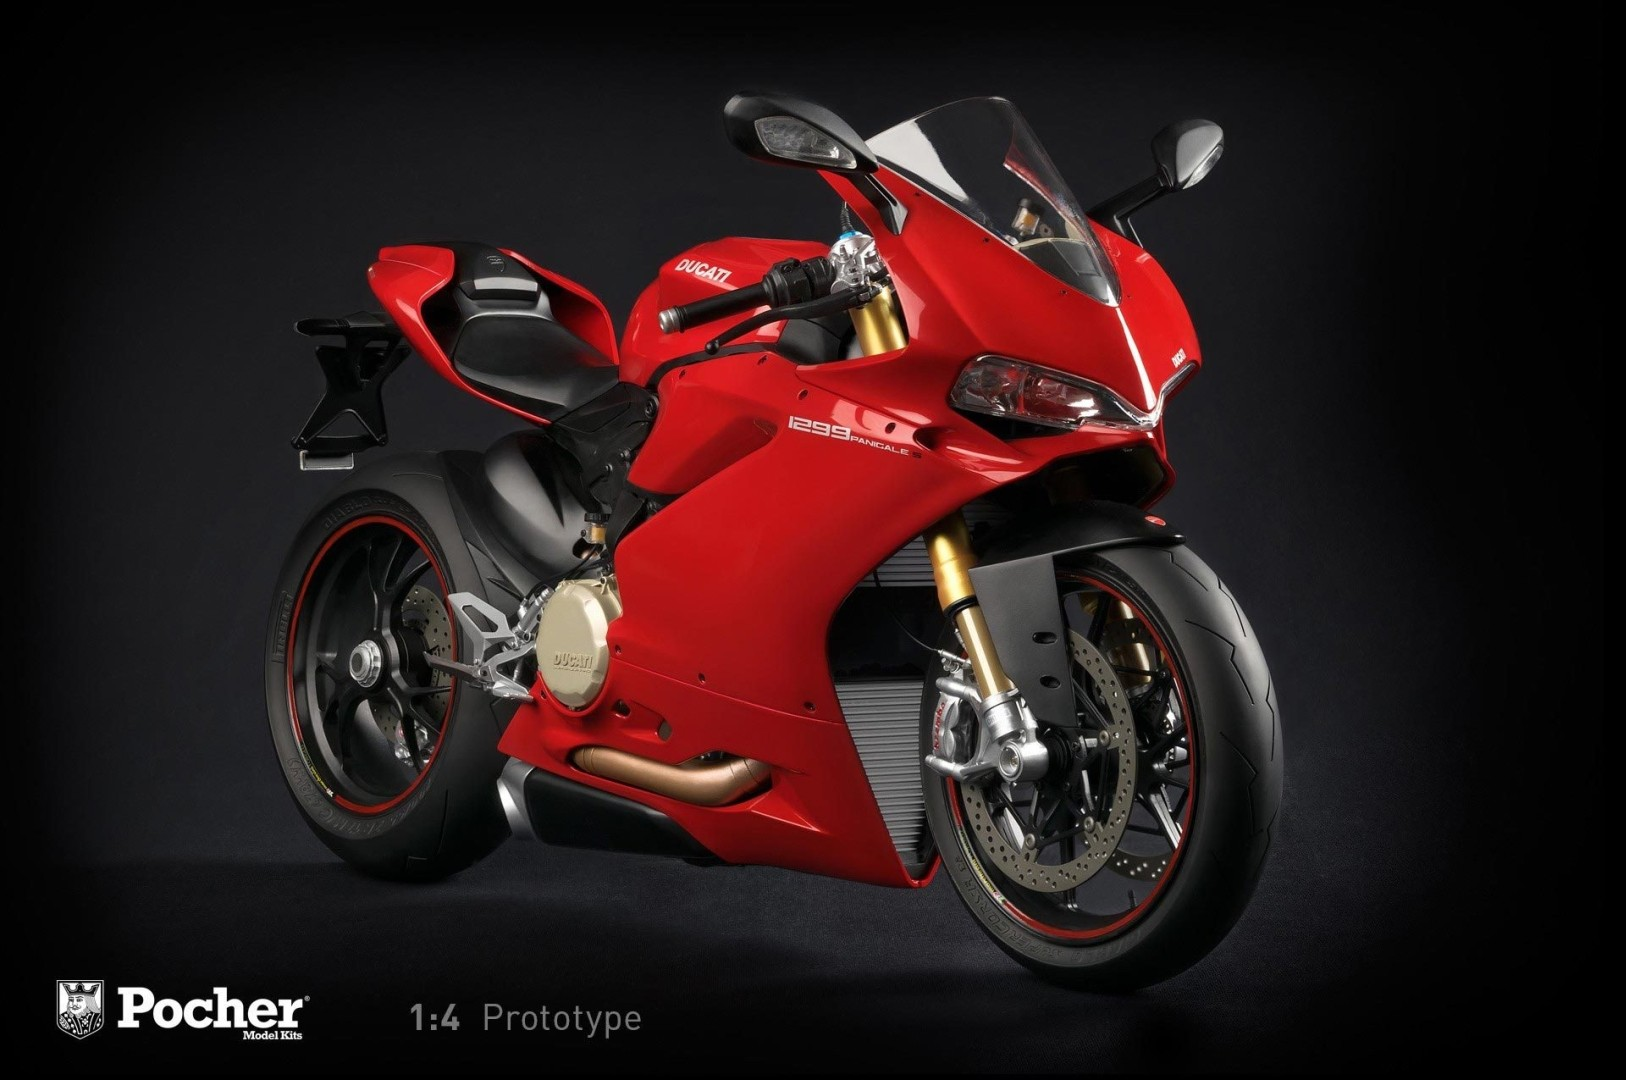 Ducati 1299 Panigale S 1:4 Scale Model Is the Ultimate Christmas